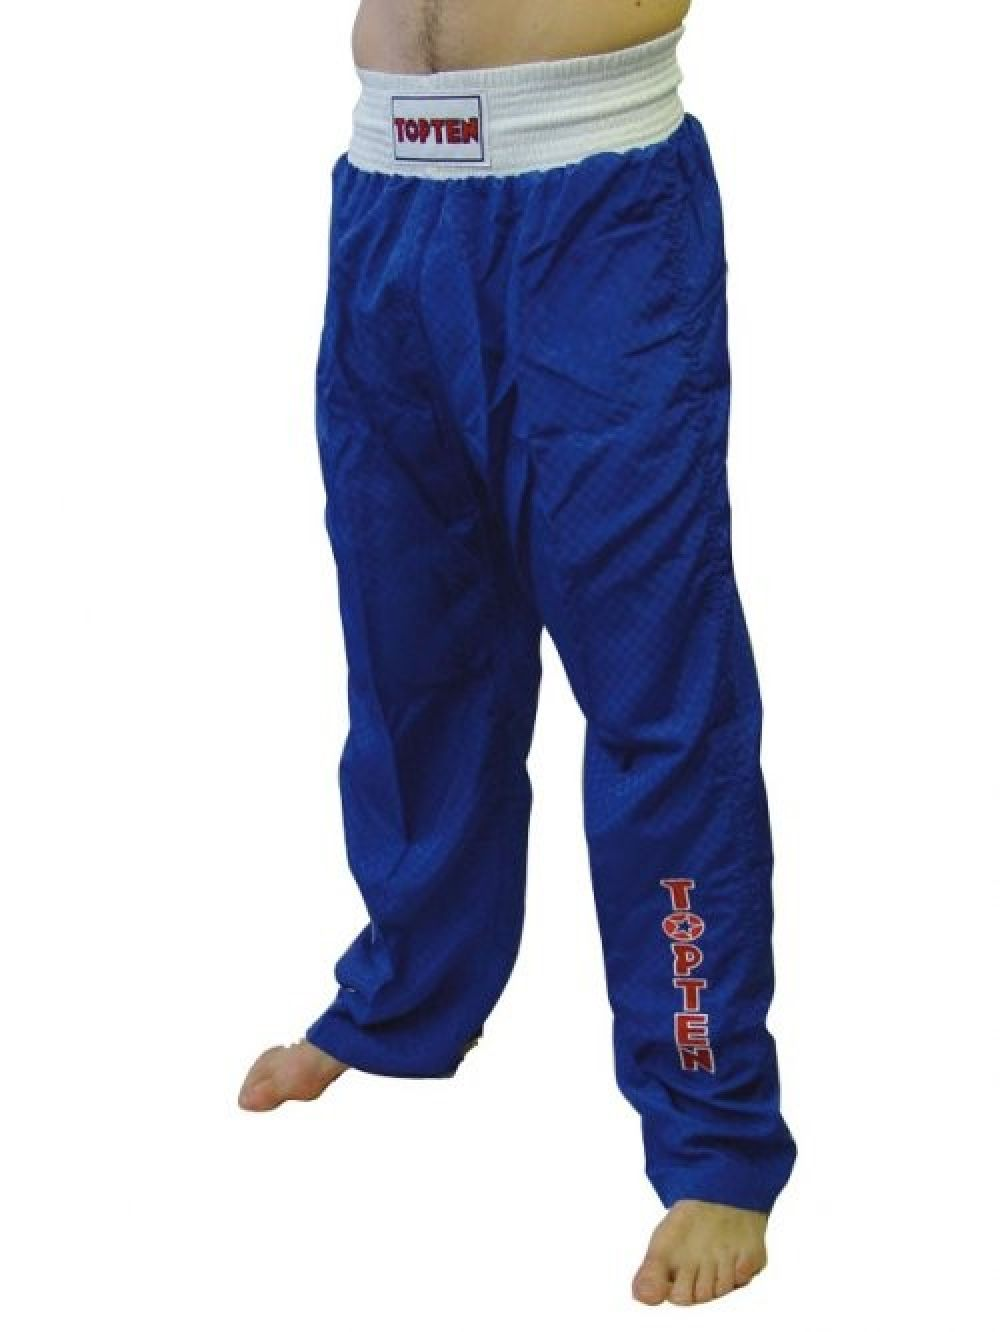 Top Ten Sport Pants - blue/white